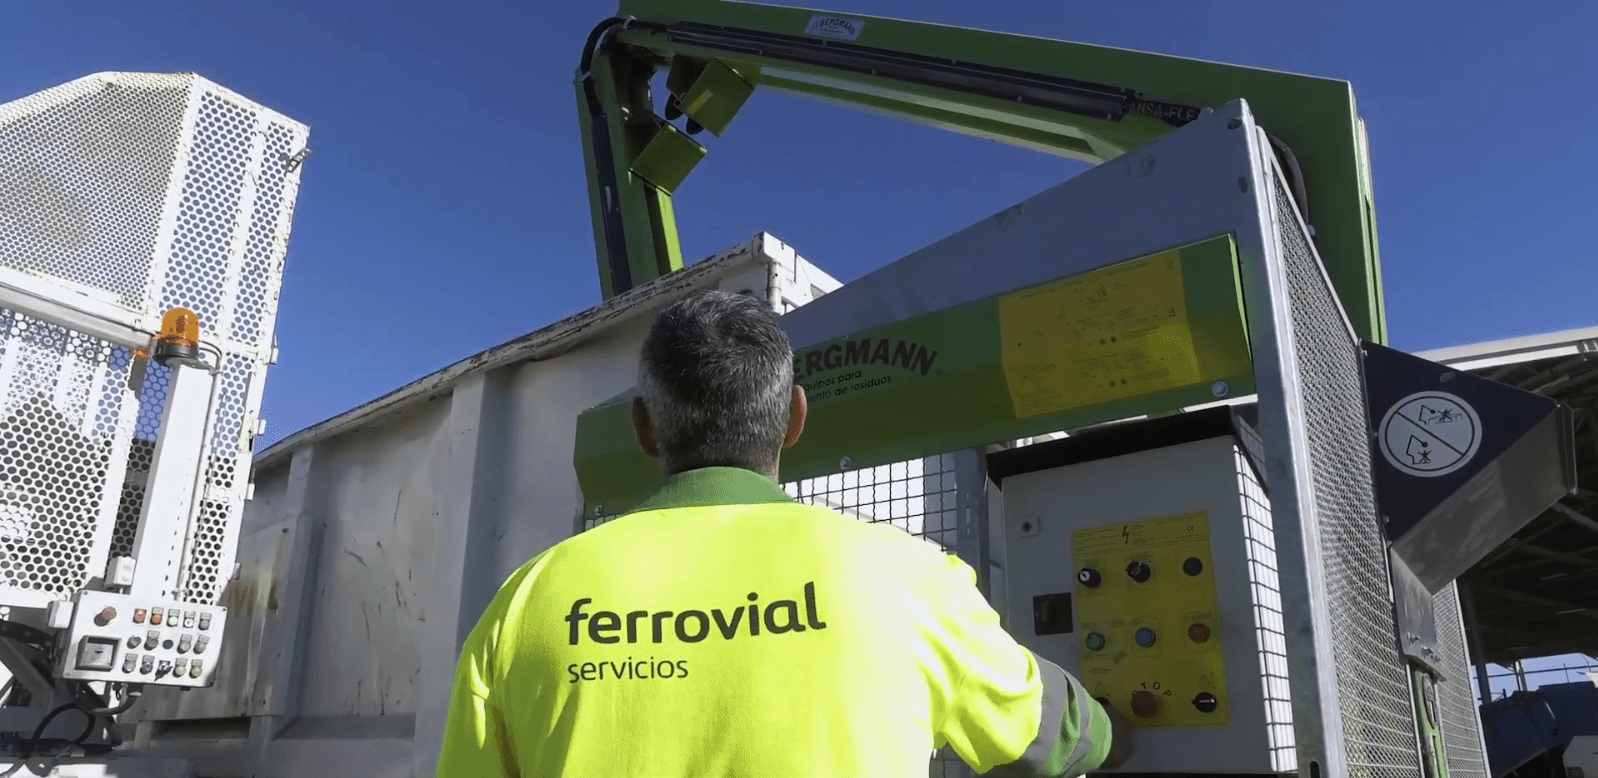 The zero waste to landfill project at the ford plant in valencia